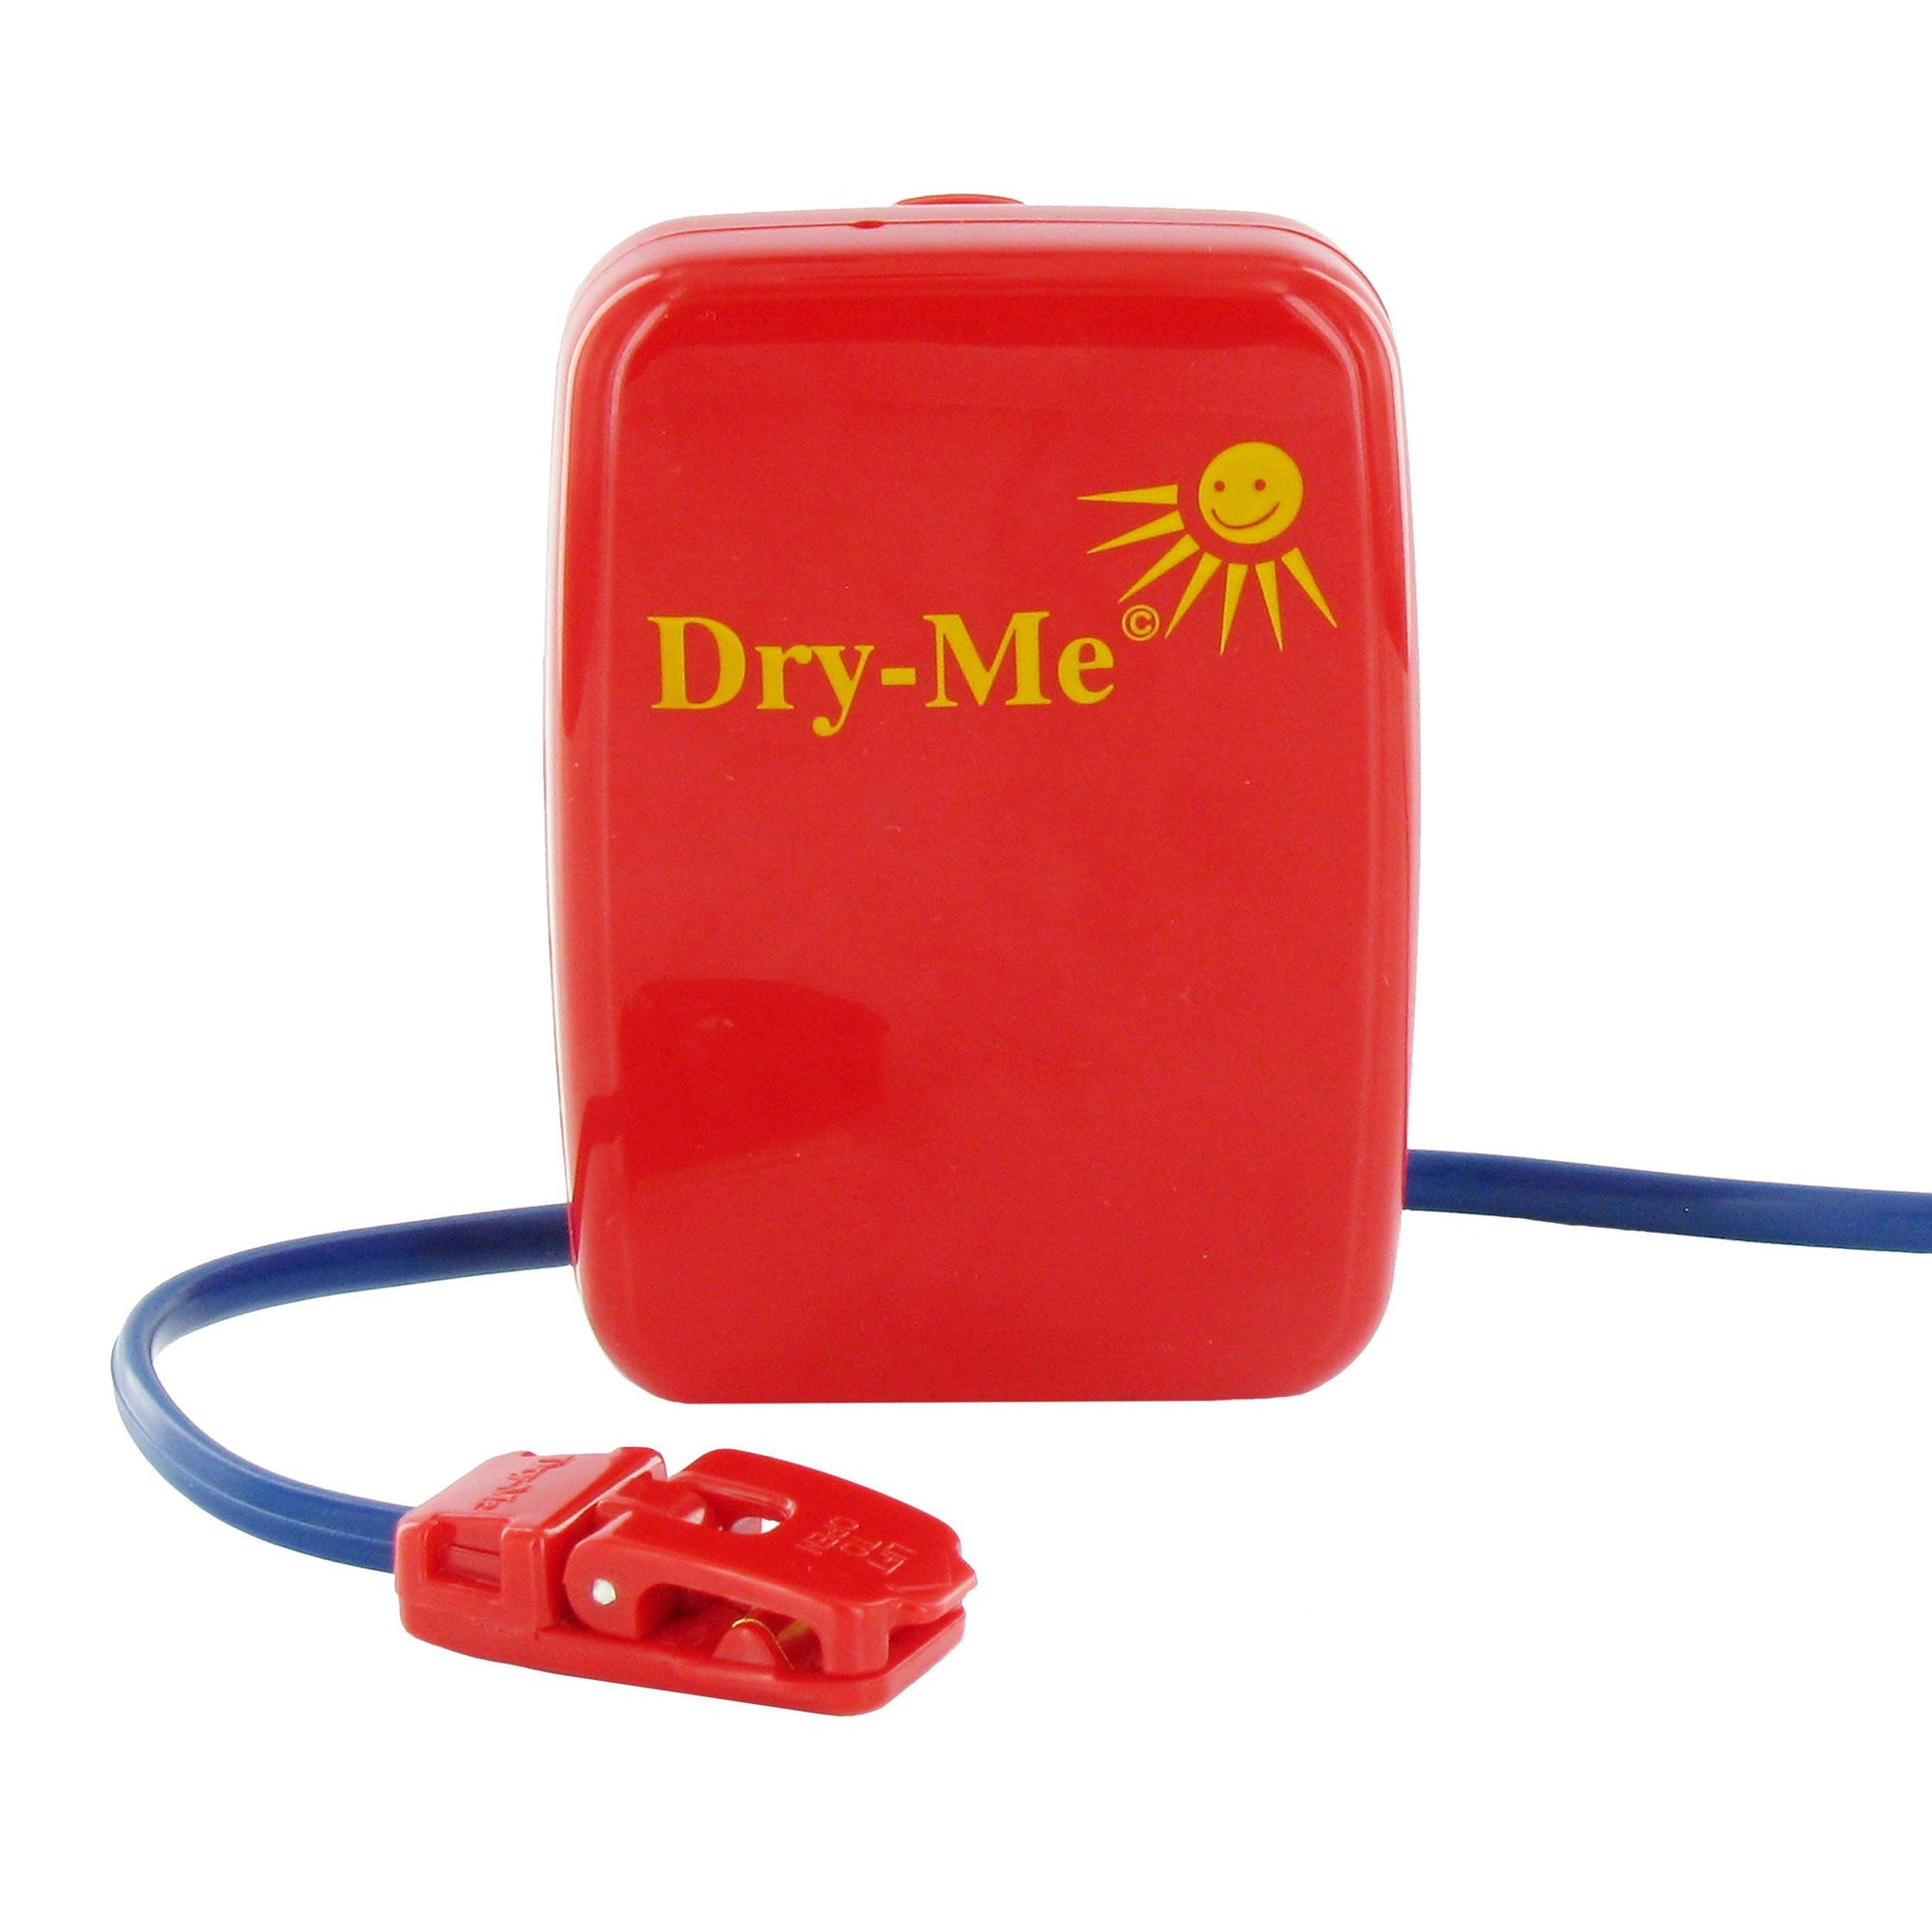 Dry-Me Bedwetting Alarm